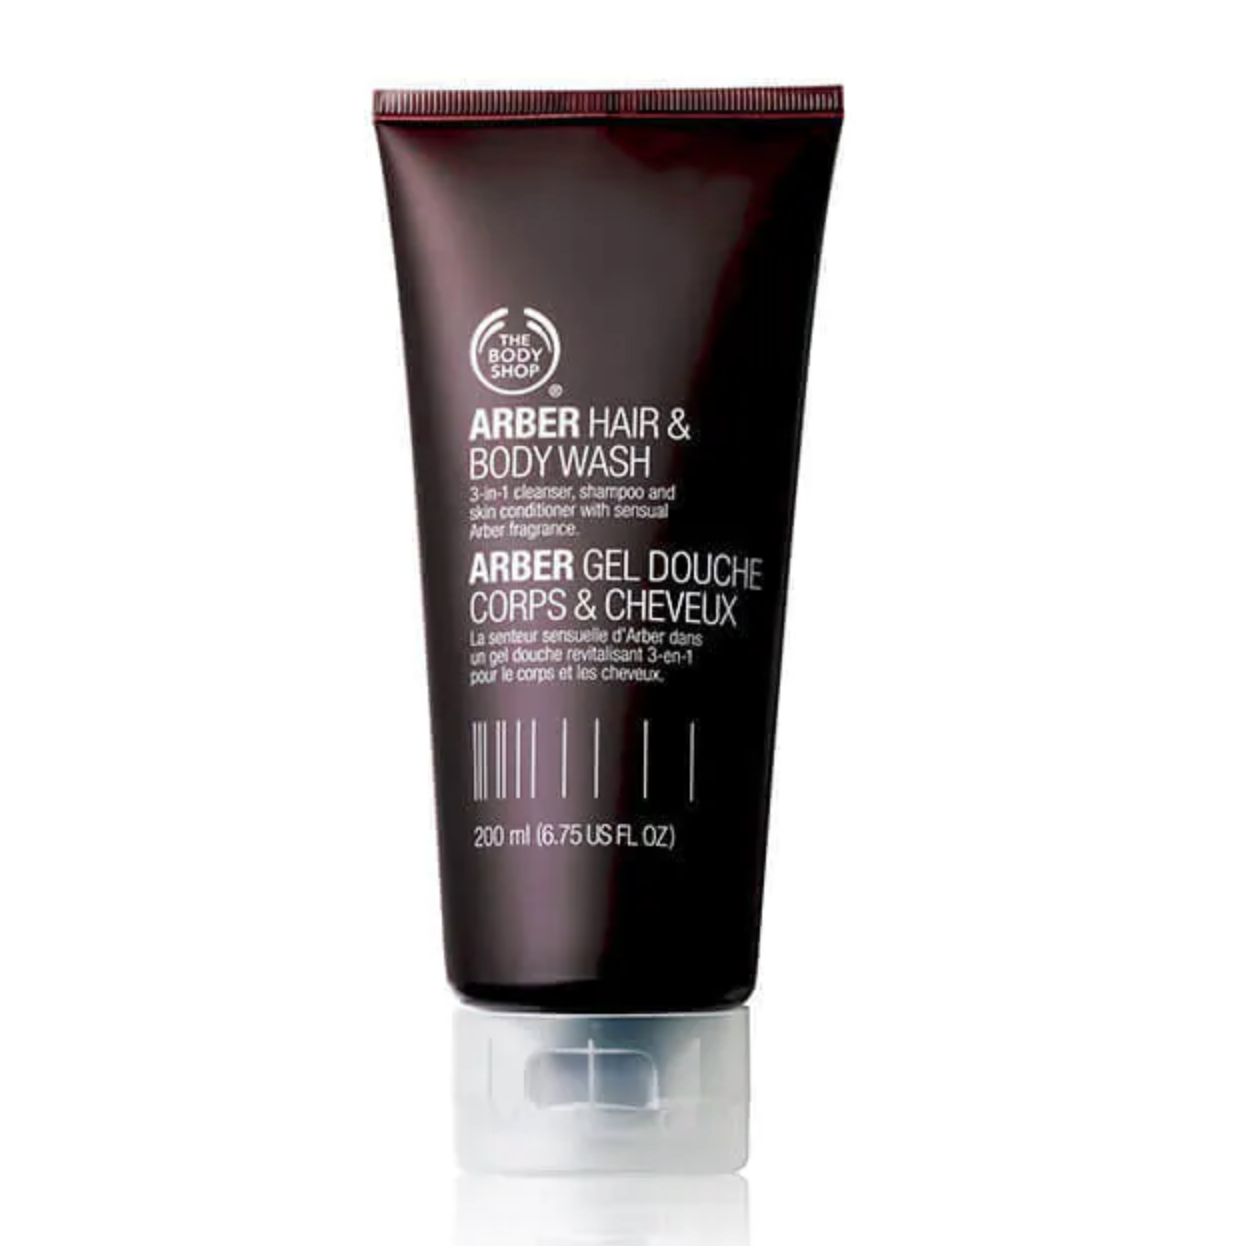 Arber Hair and Body Wash